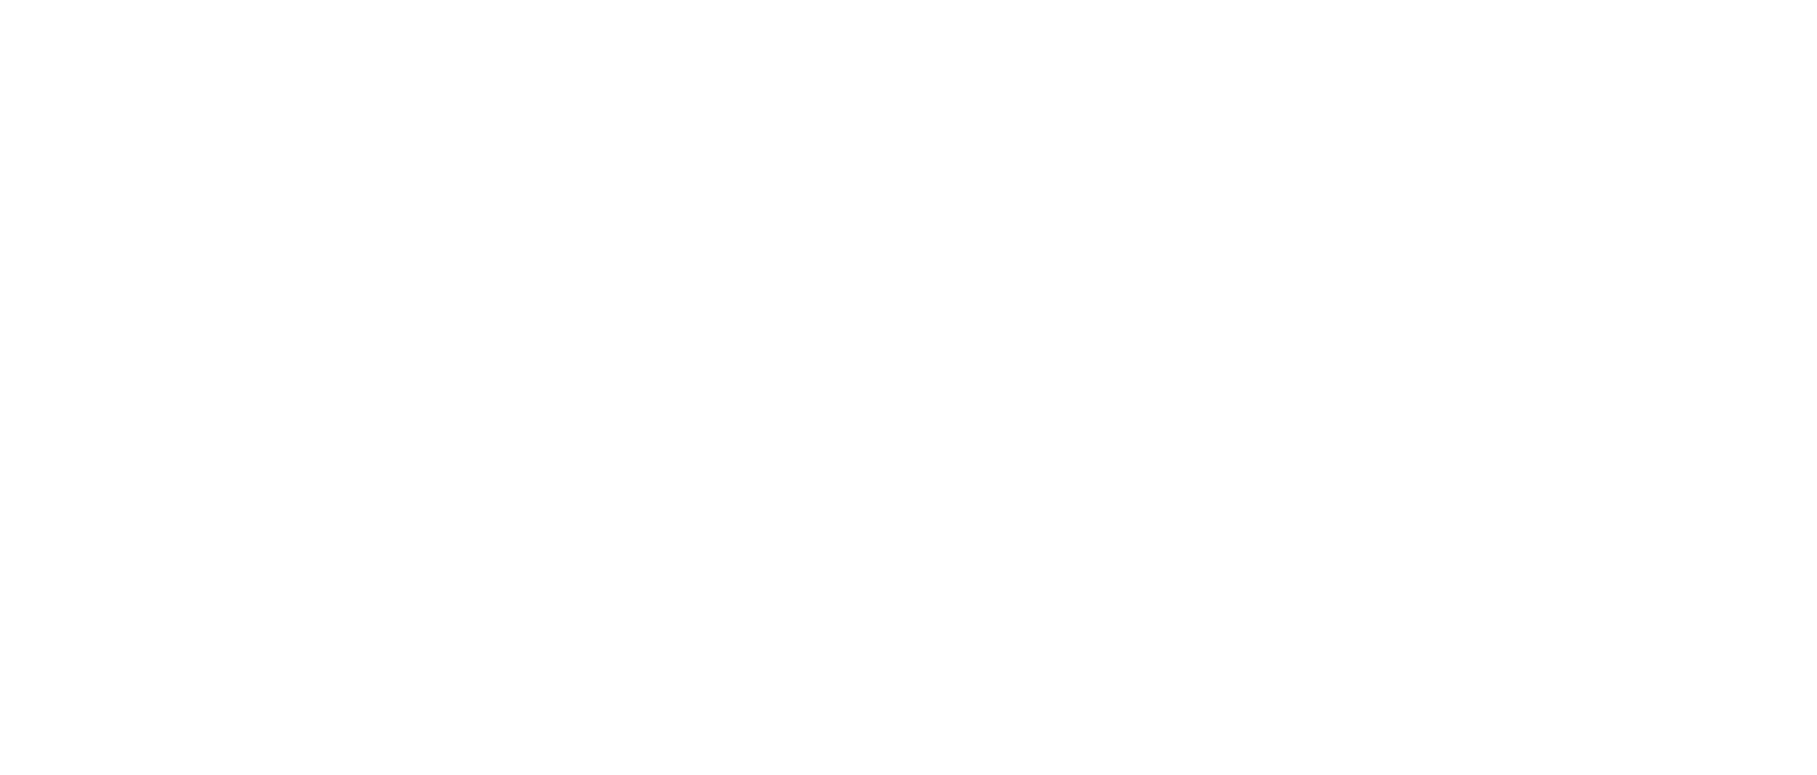 Totally Human - 3 Day Online Retreat